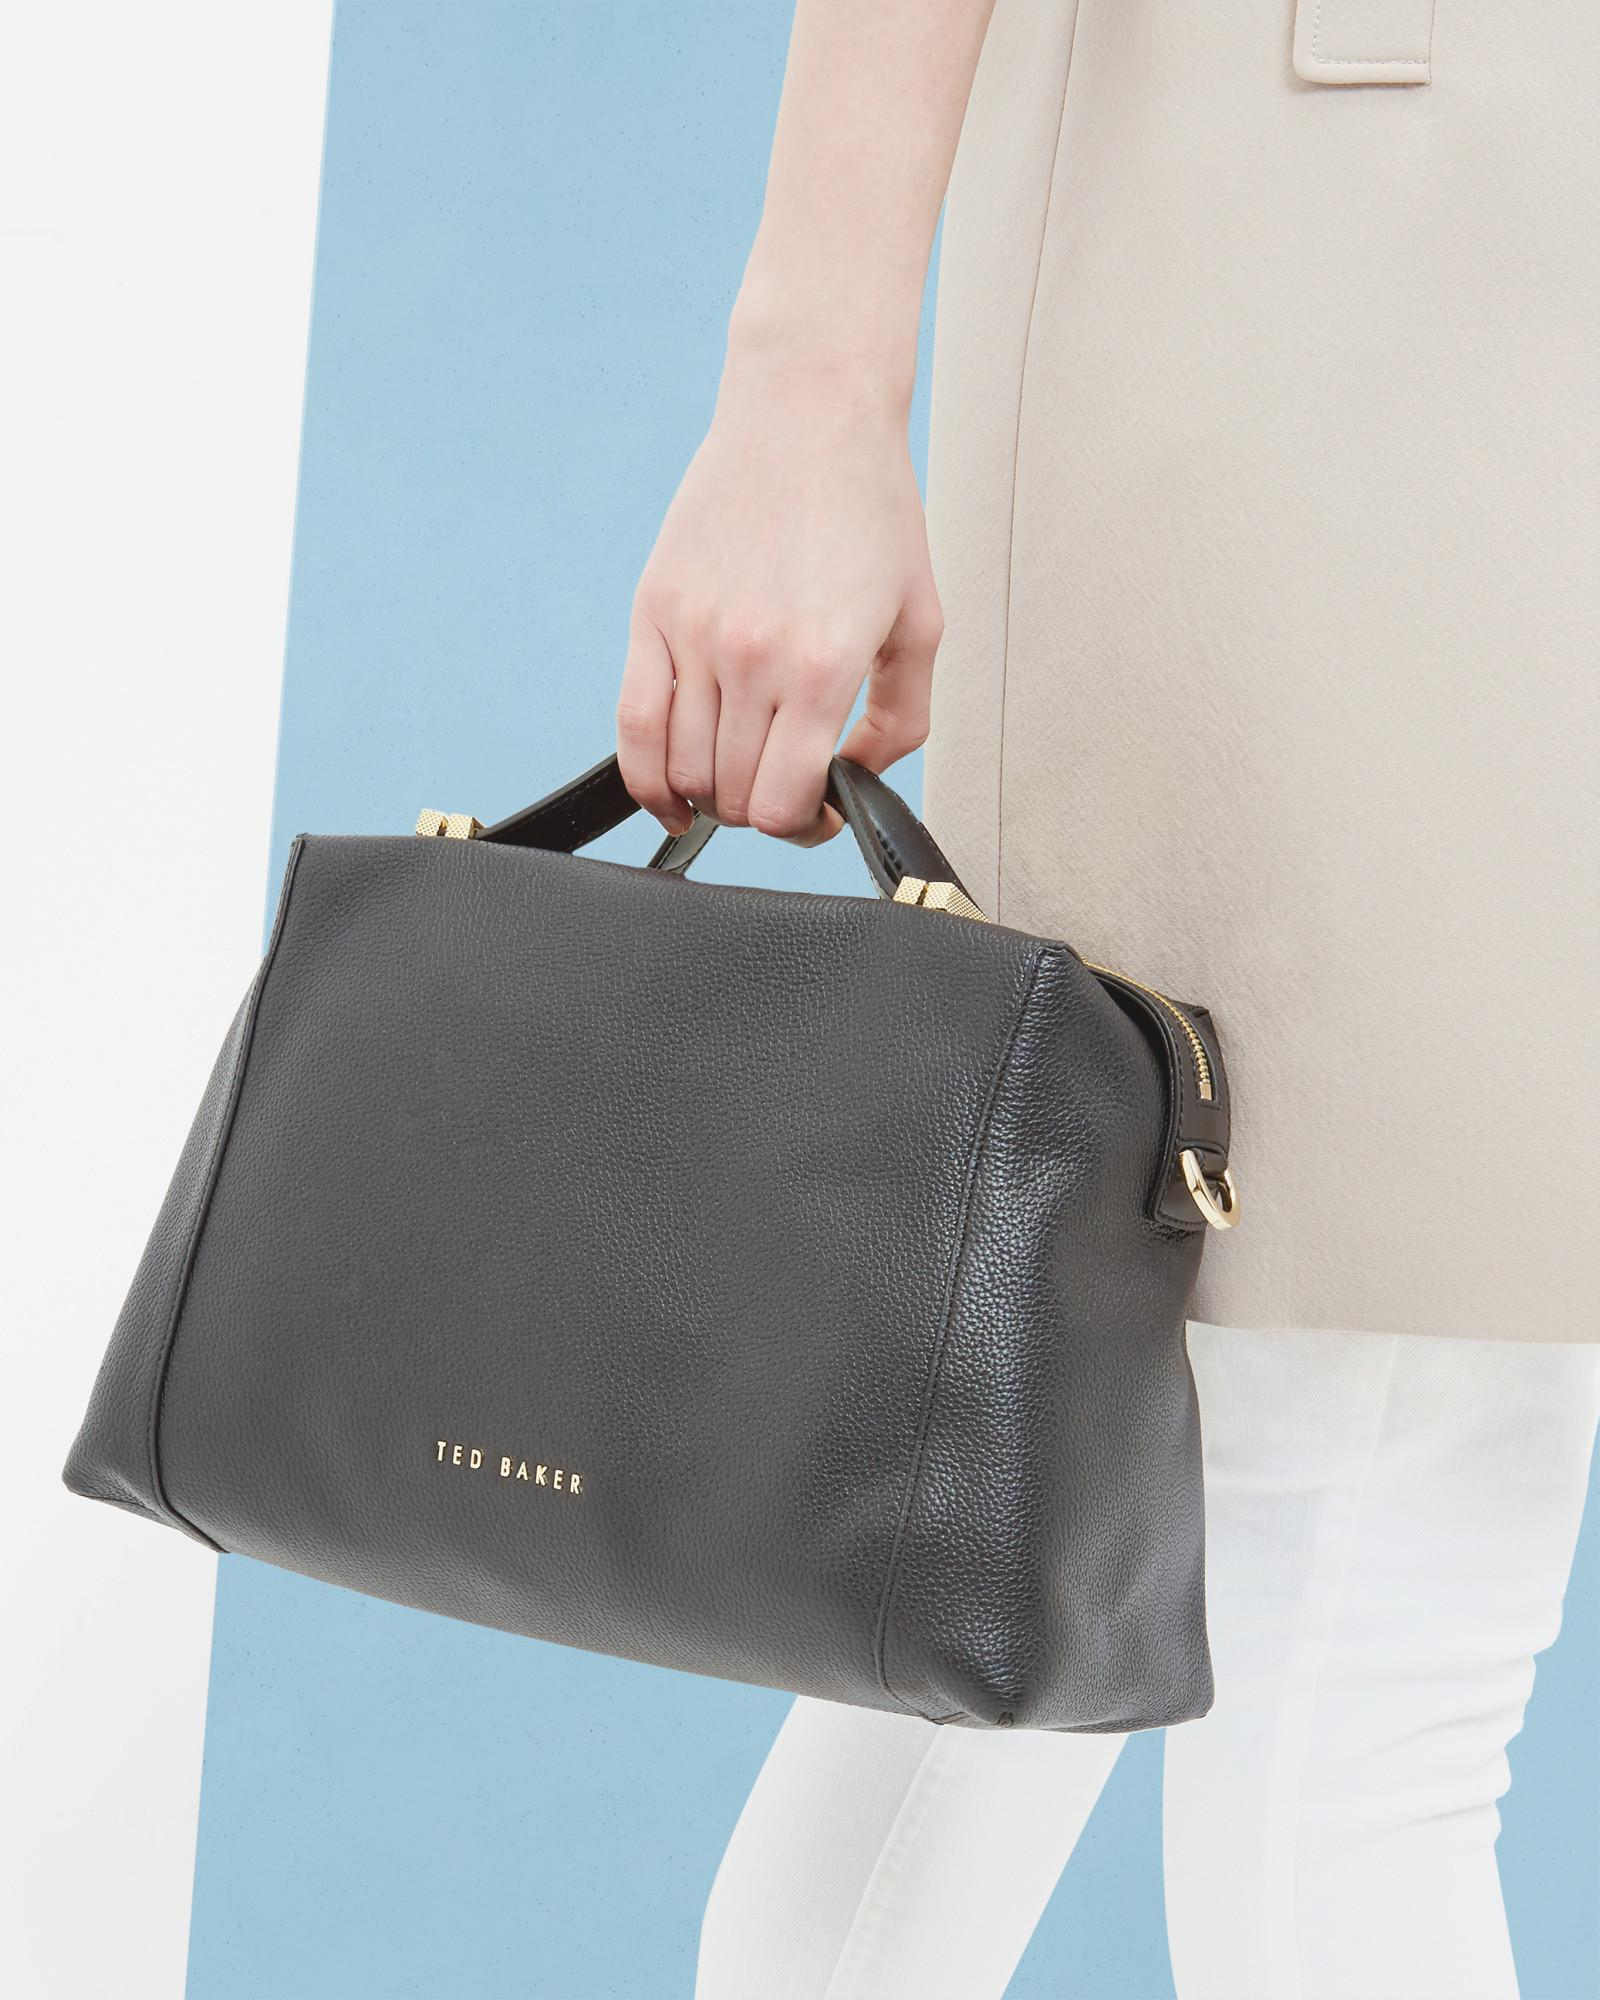 105f050450fa Lyst - Ted Baker Pop Handle Large Tote Bag in Black